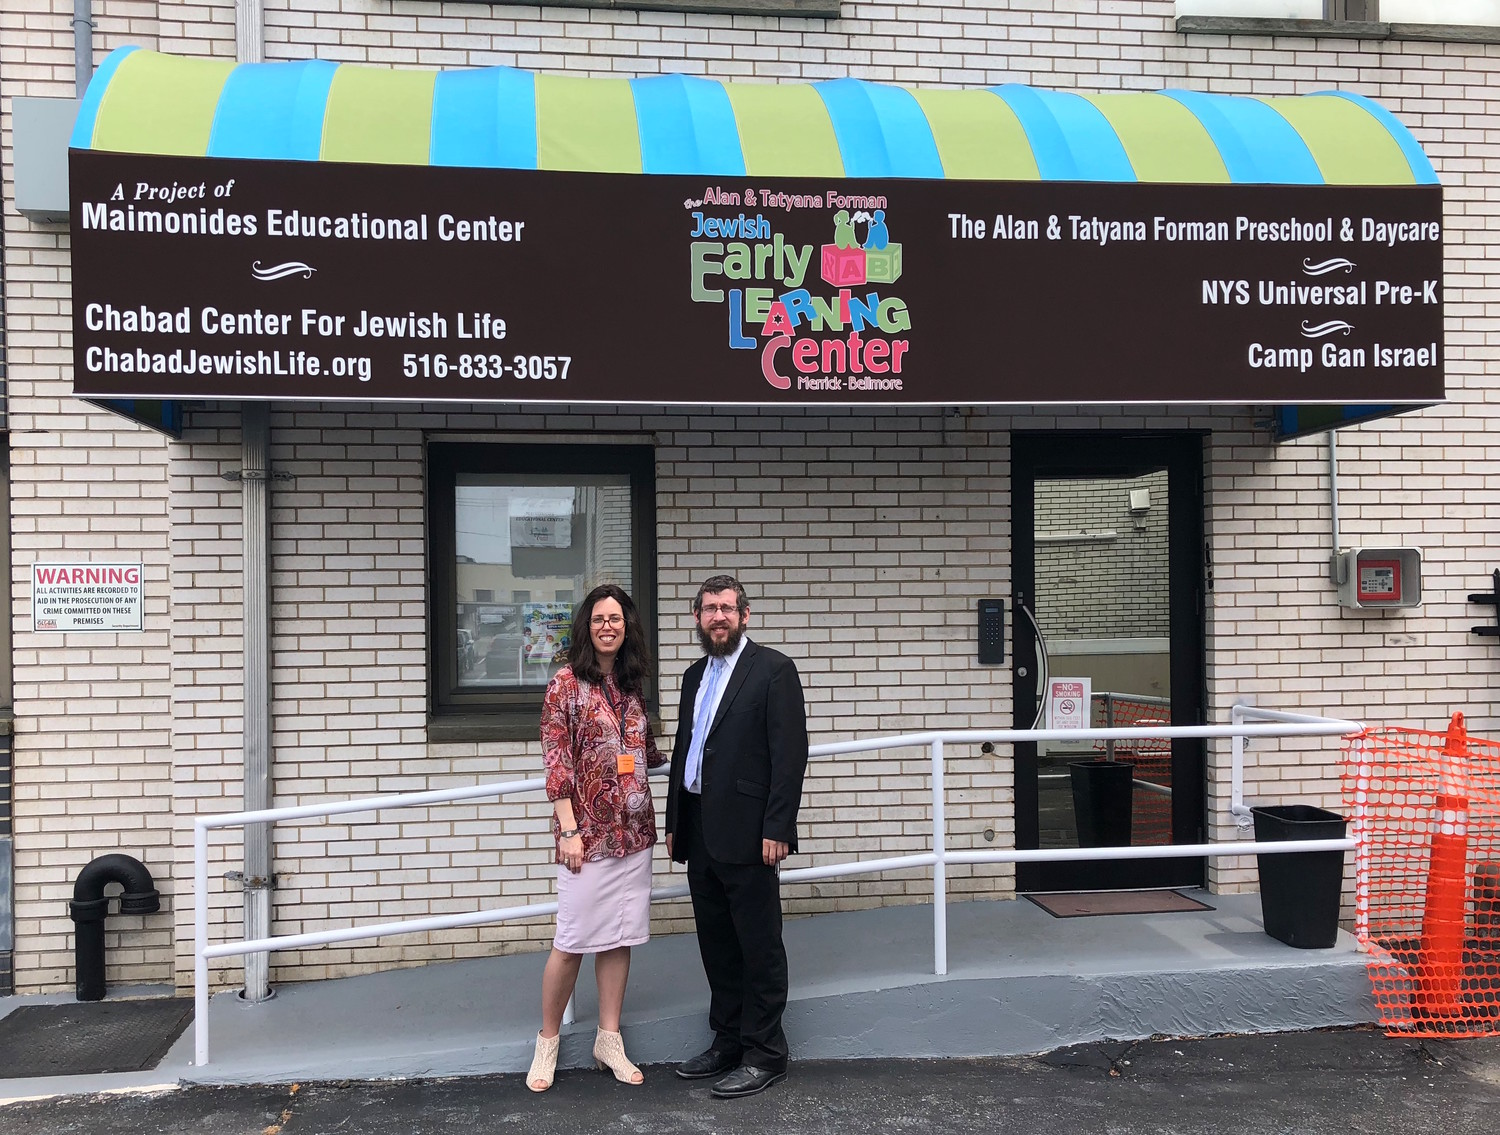 Rabbi Shimon Kramer and his wife, Chanie, under the new awning over the entrance to the Jewish Early Learning Center.